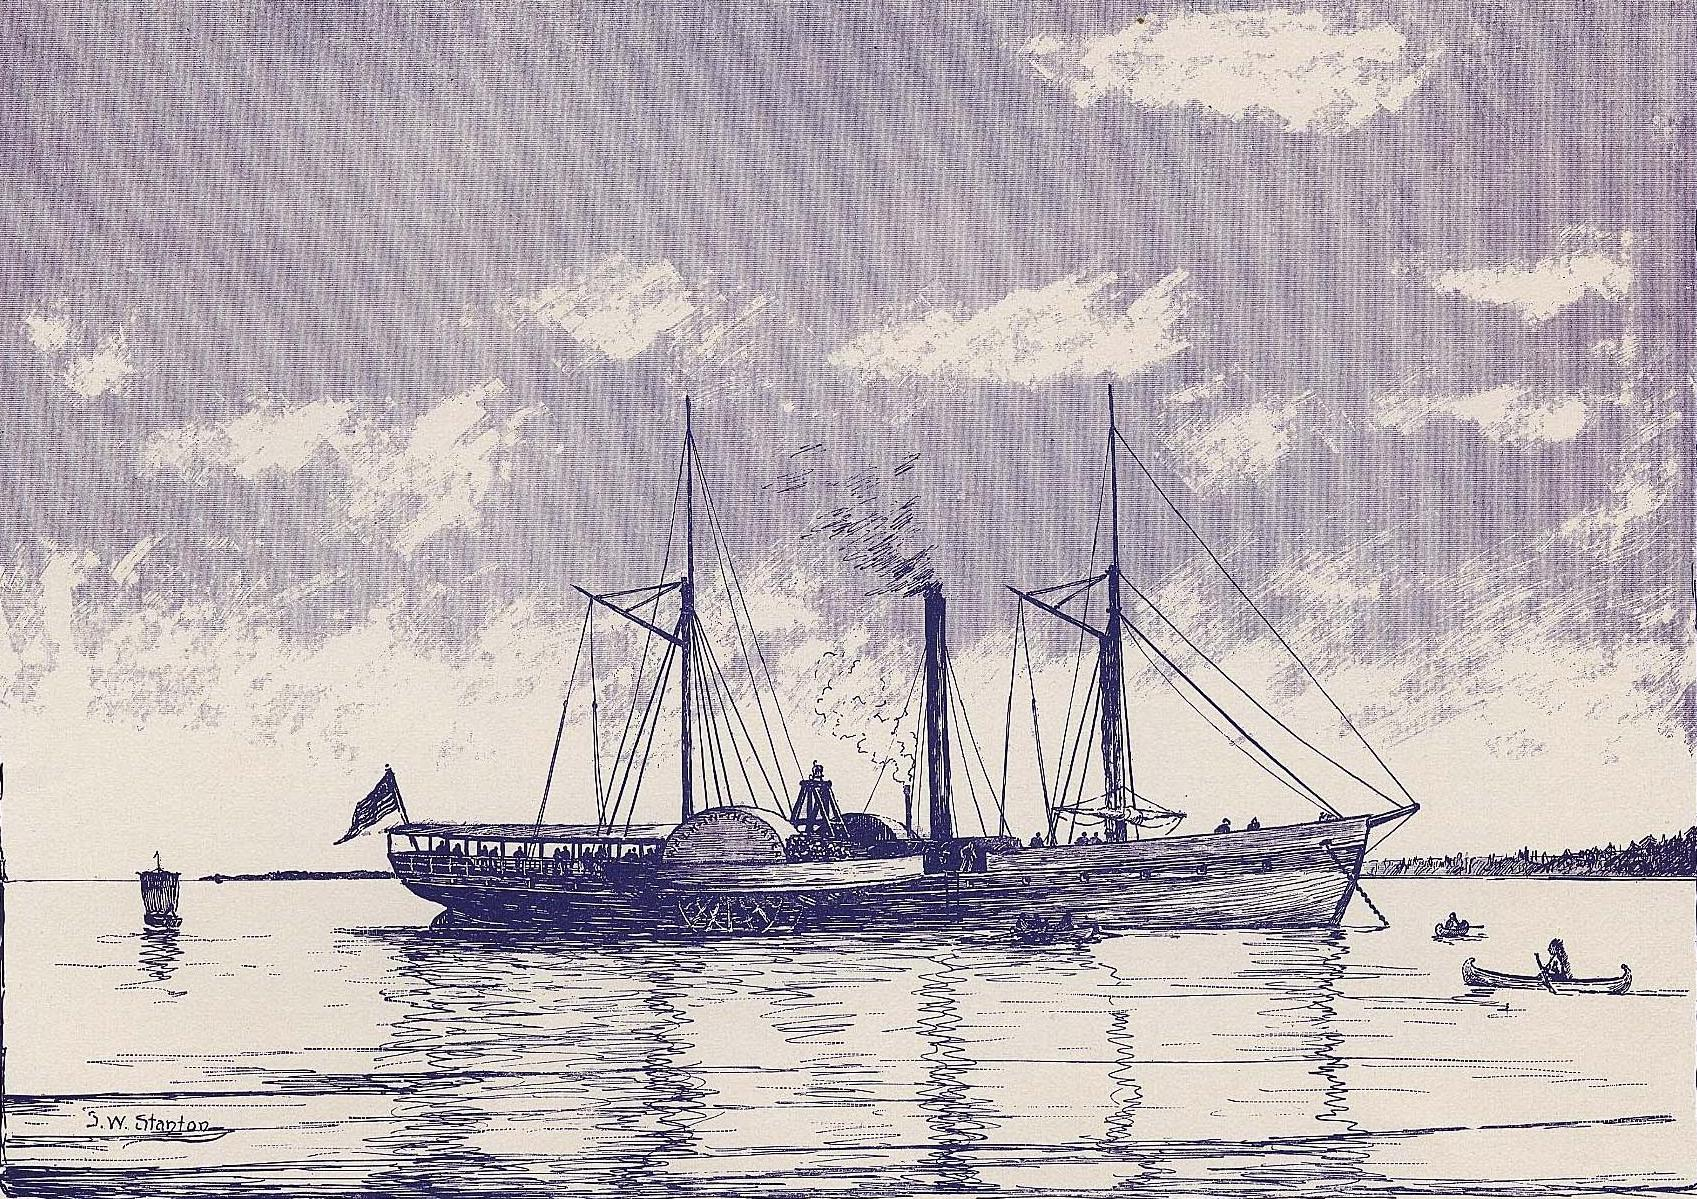 Walk-in-the-Water, the first steamboat on the Great Lakes